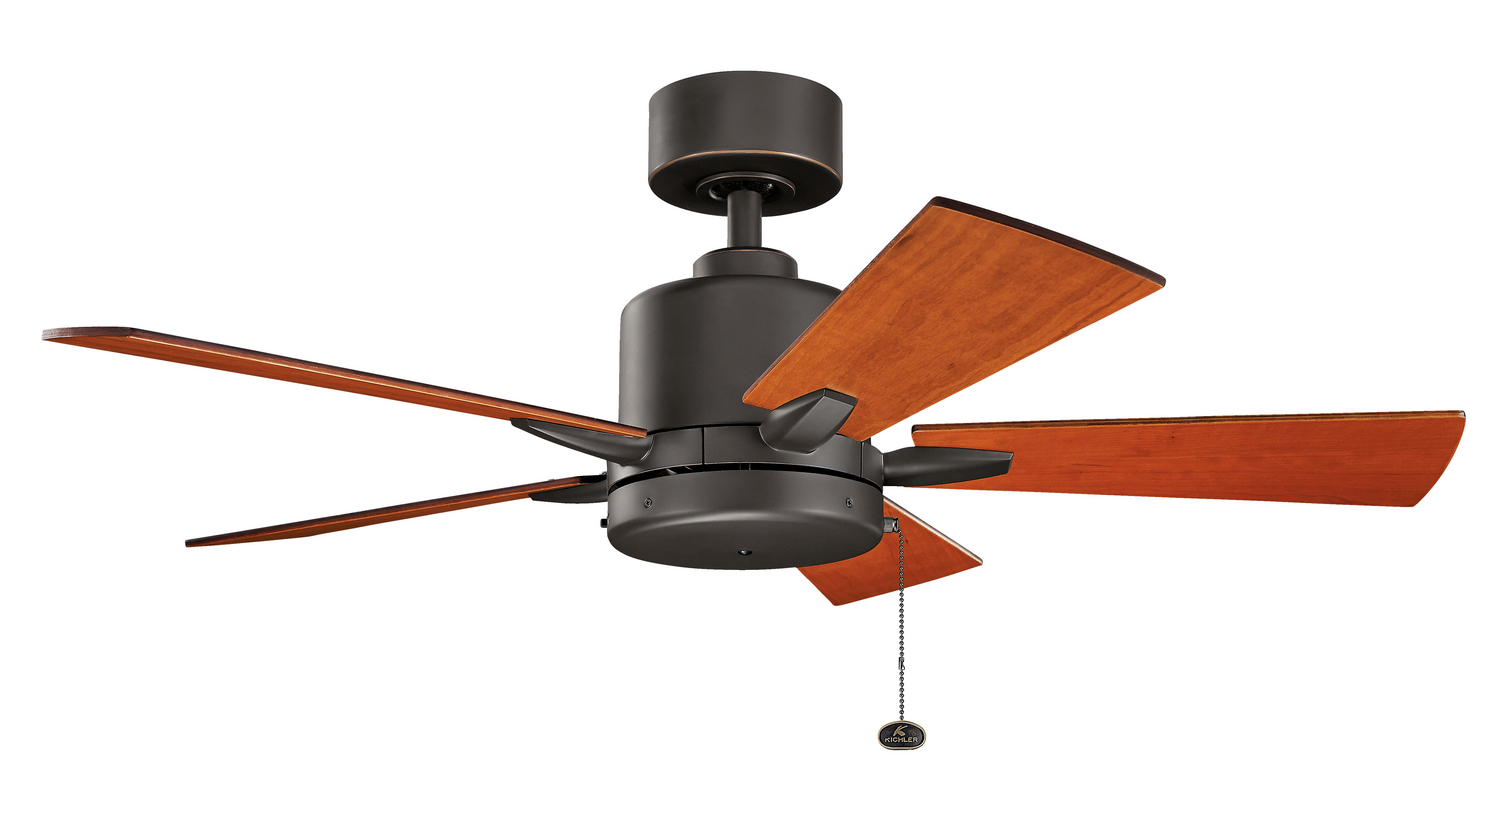 42 inchCeiling Fan from the Bowen collection by Kichler 330241OZ